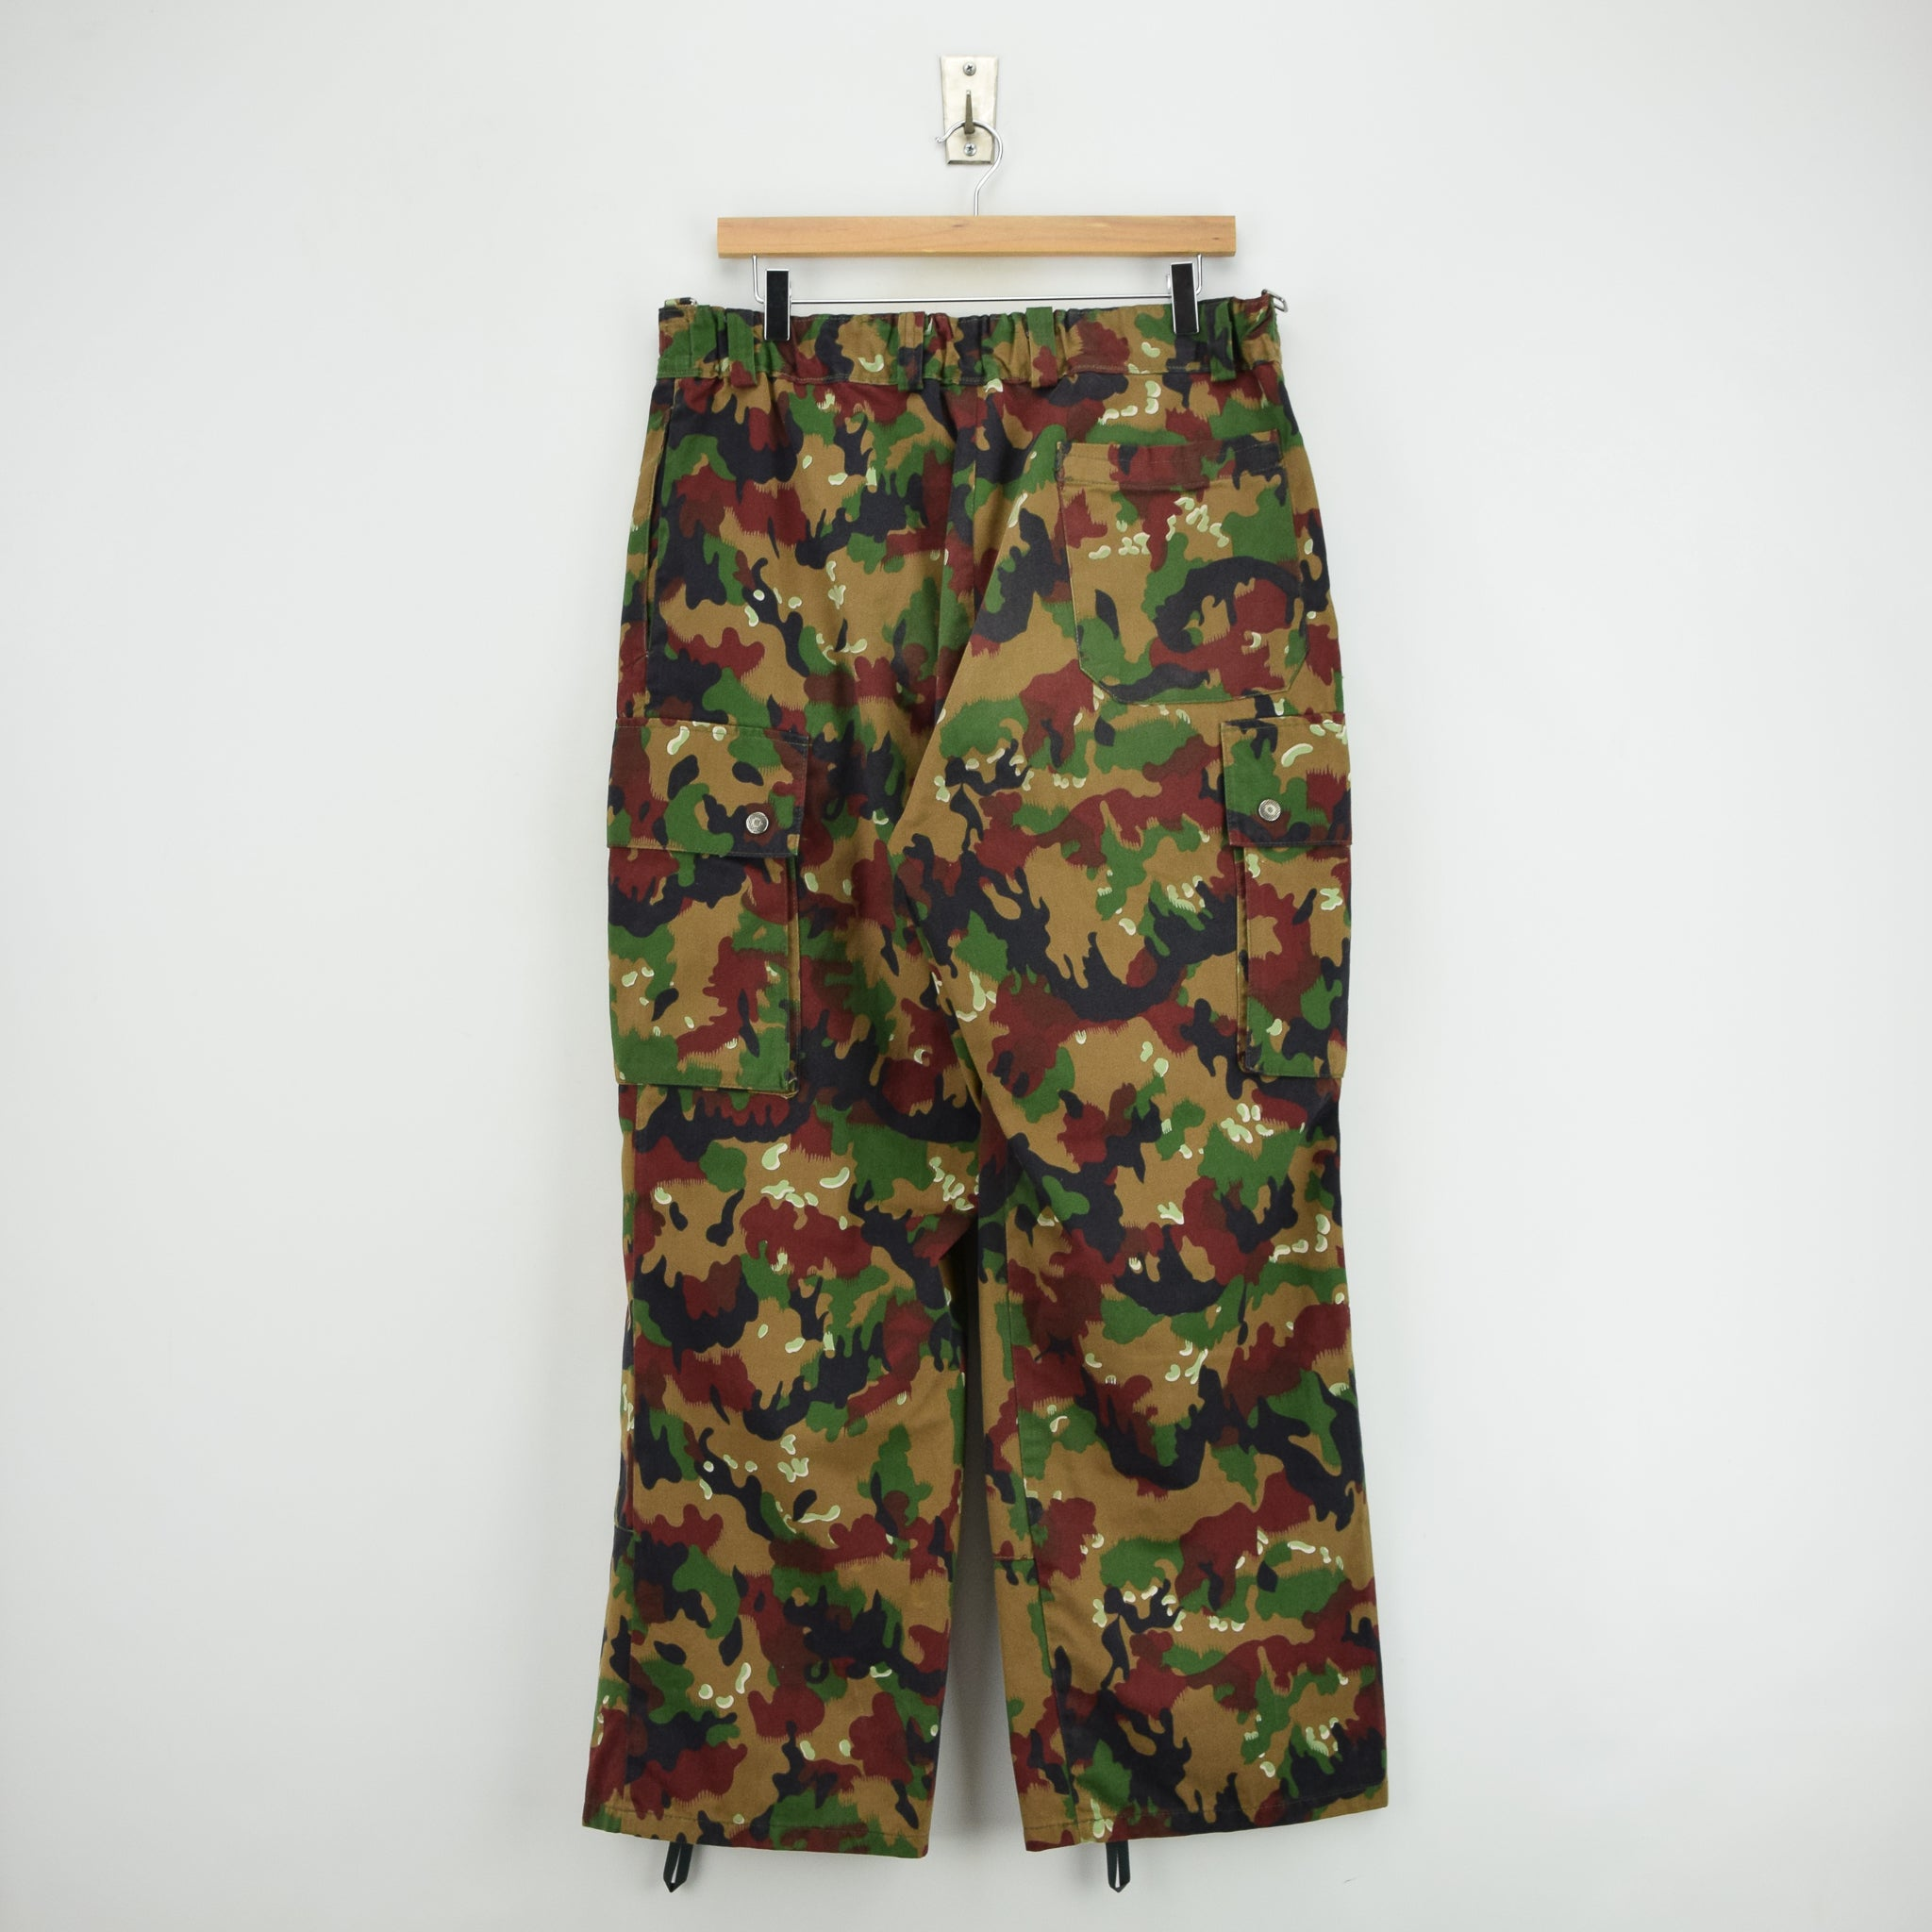 Vintage Swiss Army Alpenflage Camo Combat Pants Trousers Made in Sweden 32 W back